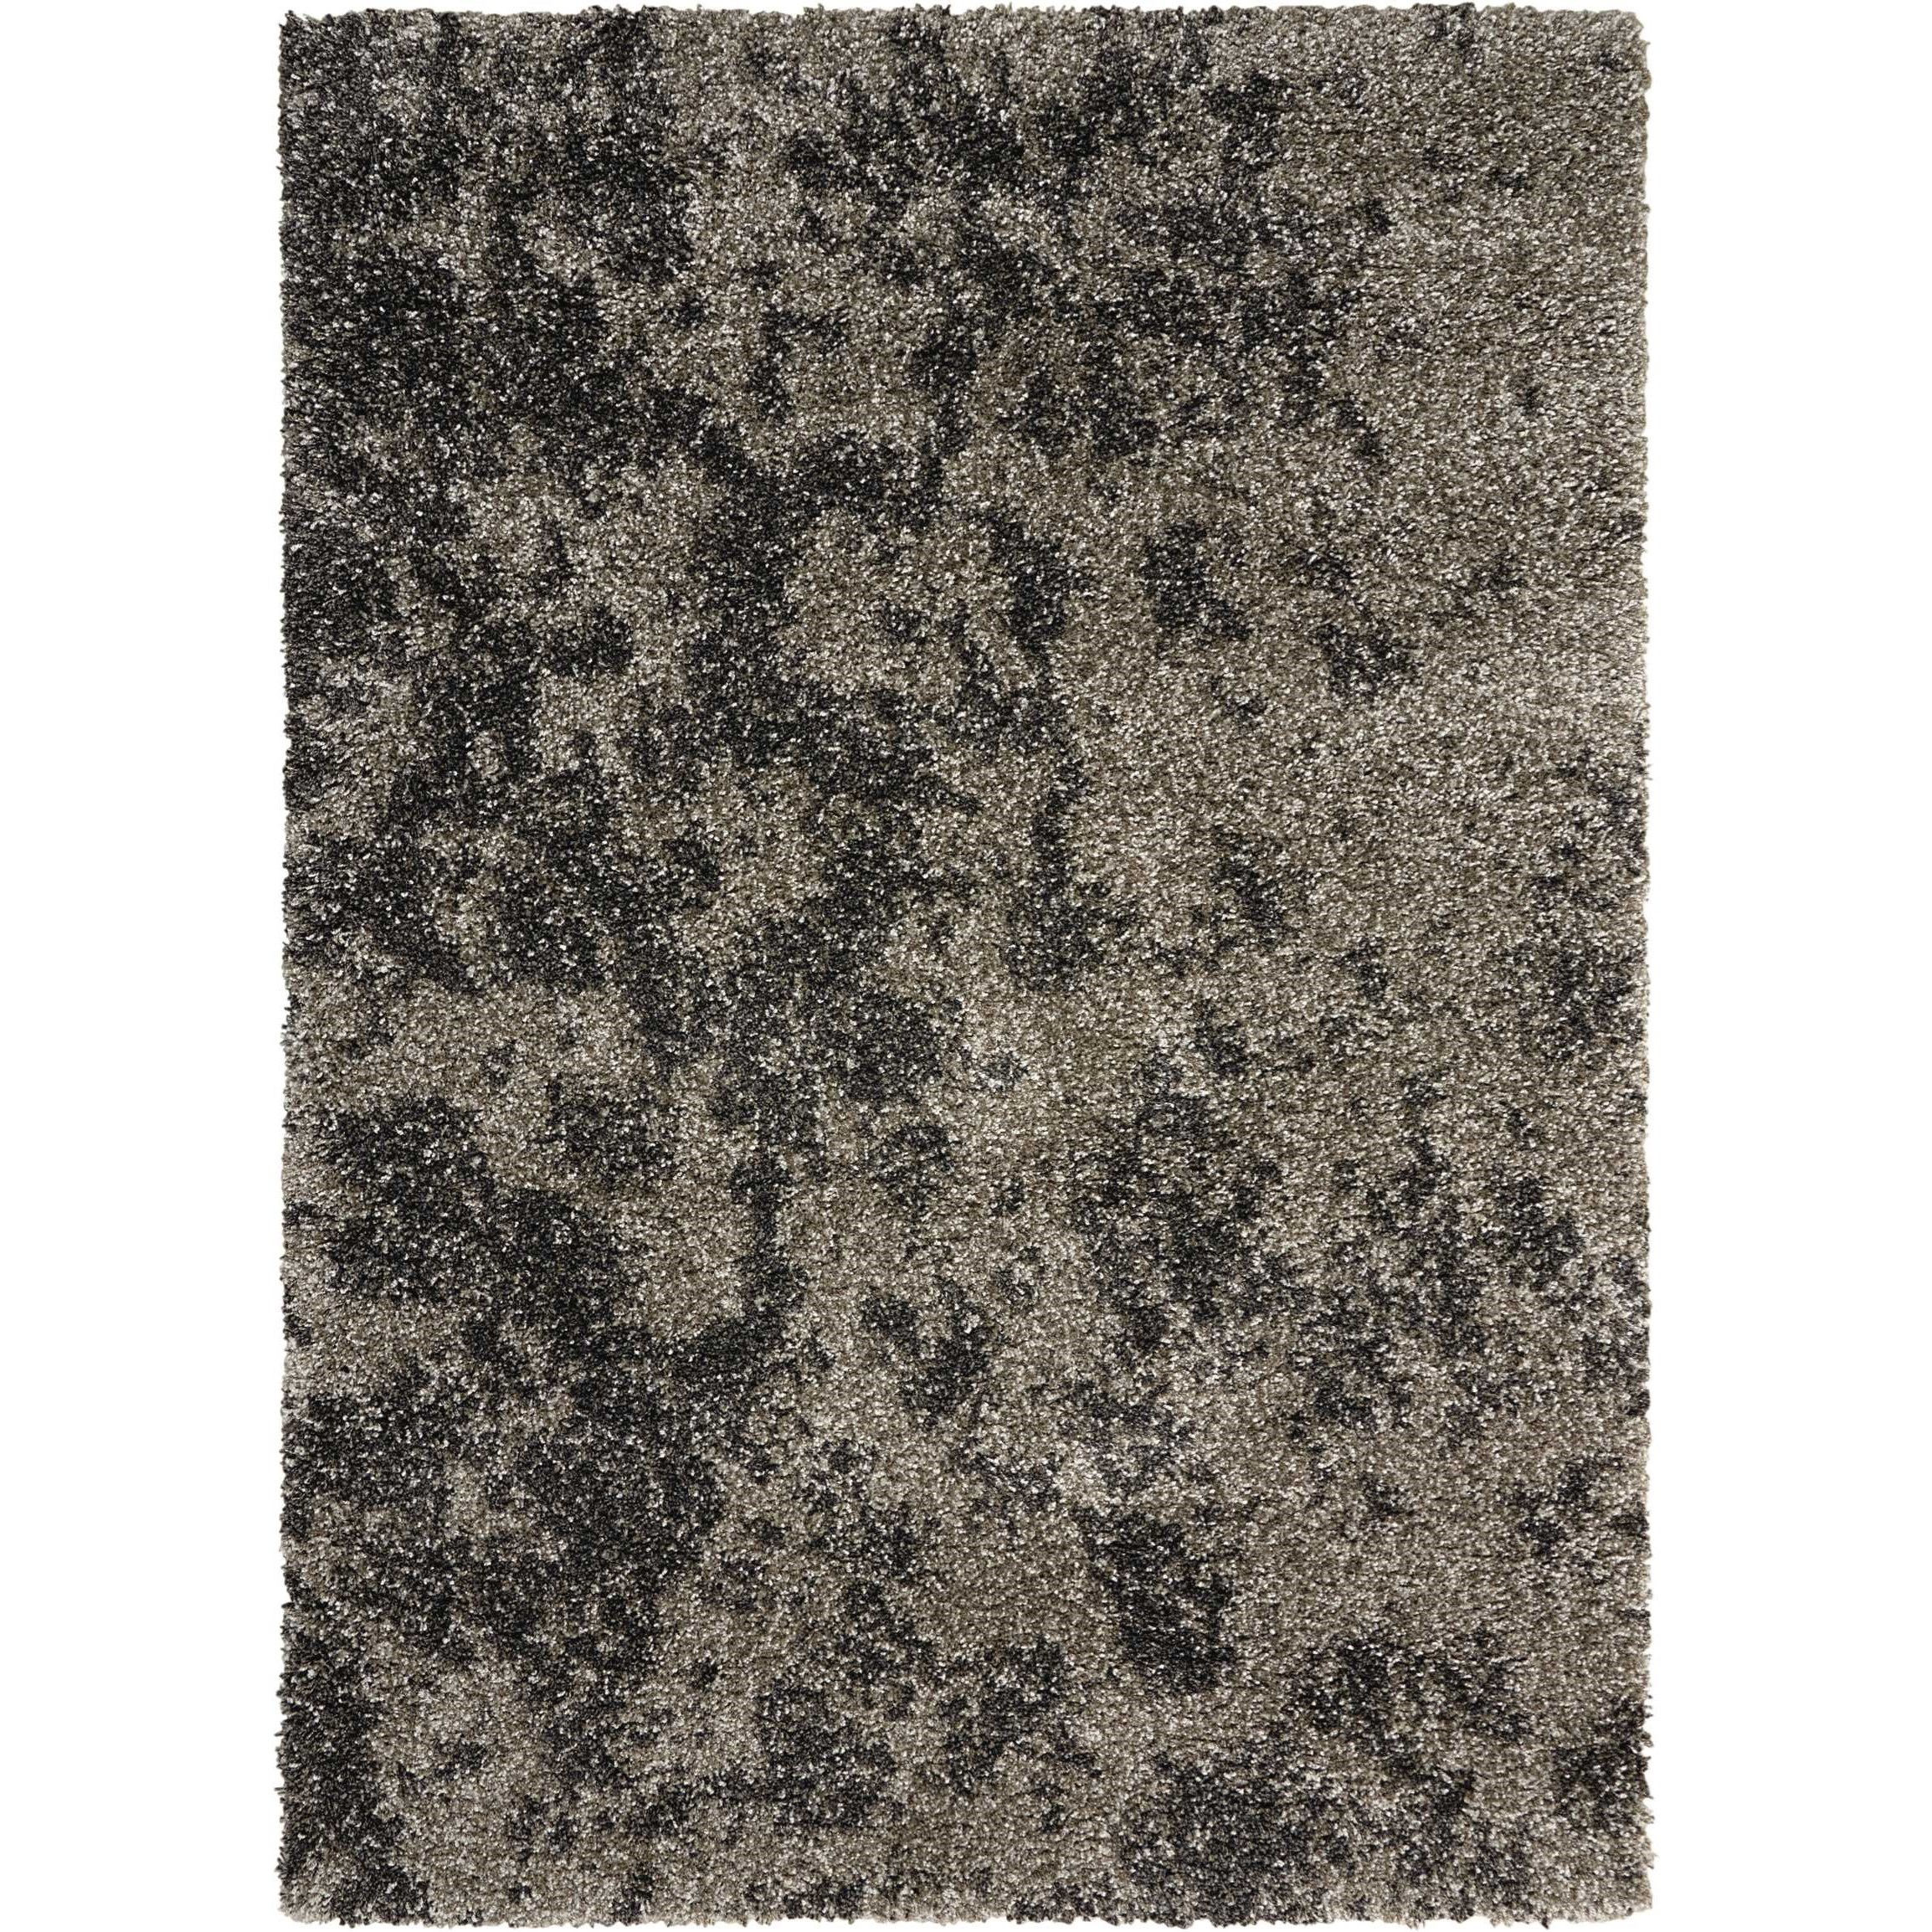 """Amore 7'10"""" x 10'10"""" Granite Rectangle Rug by Nourison at Home Collections Furniture"""